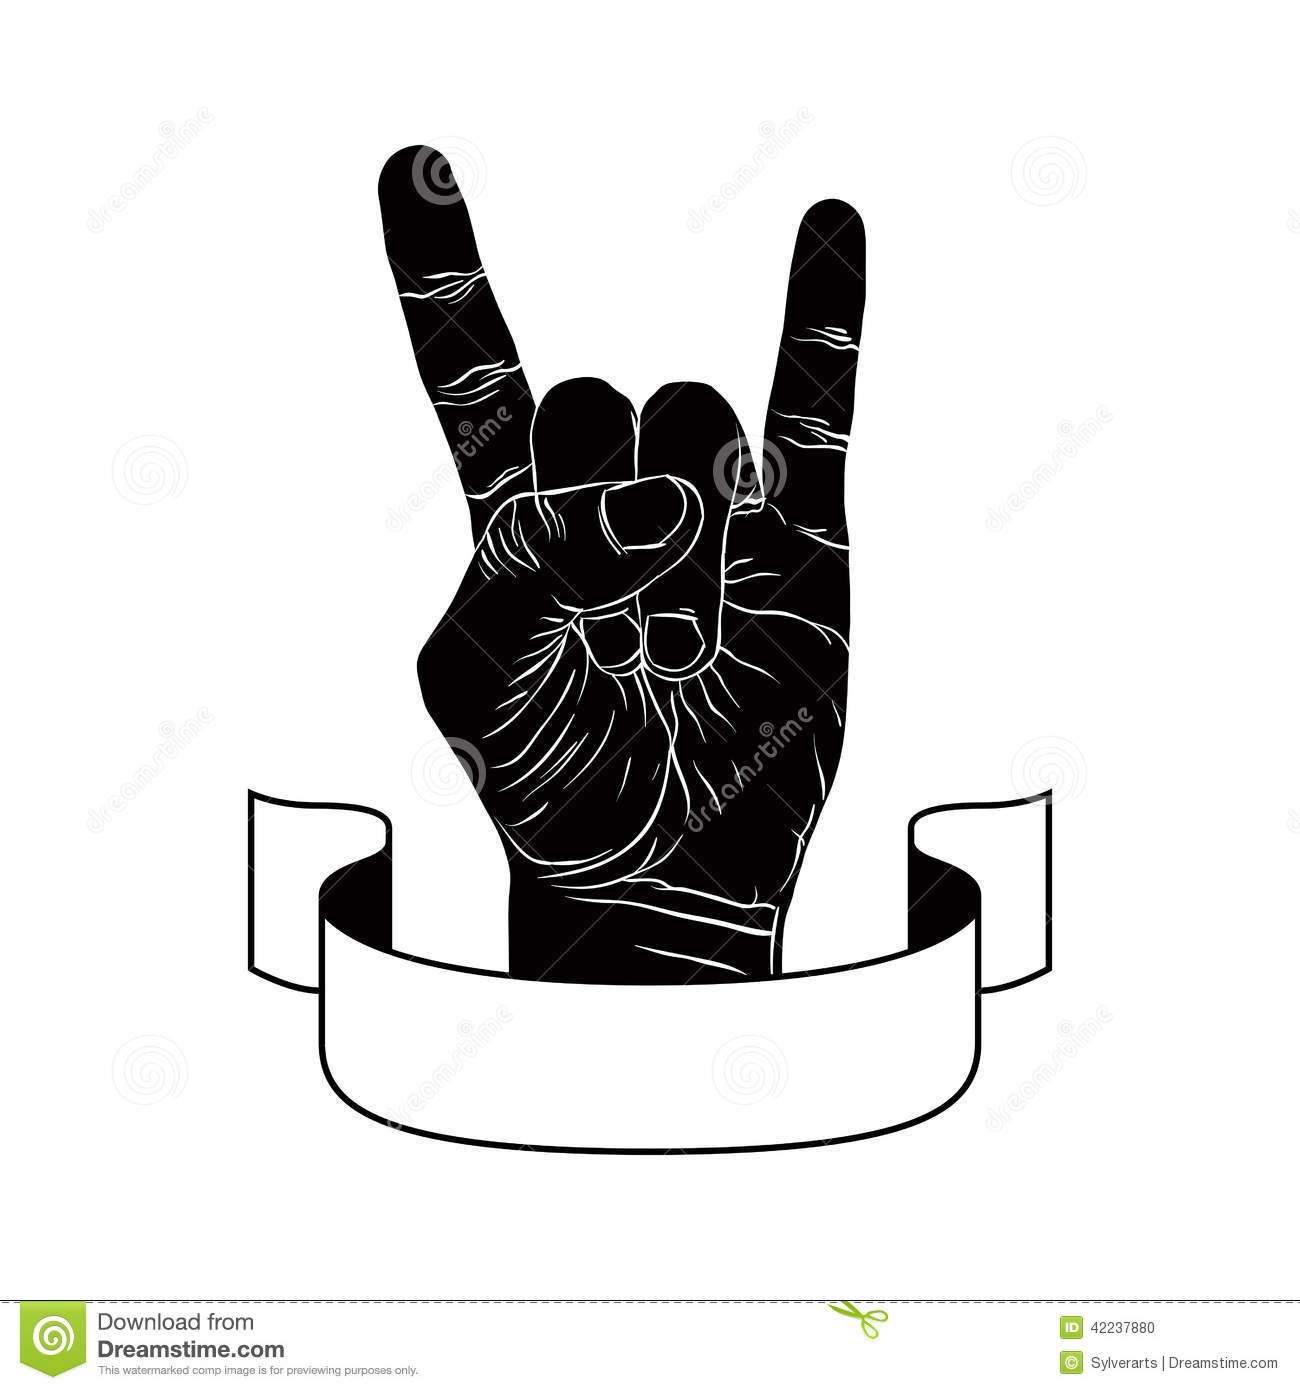 Heavy Metal clipart hard rock #14